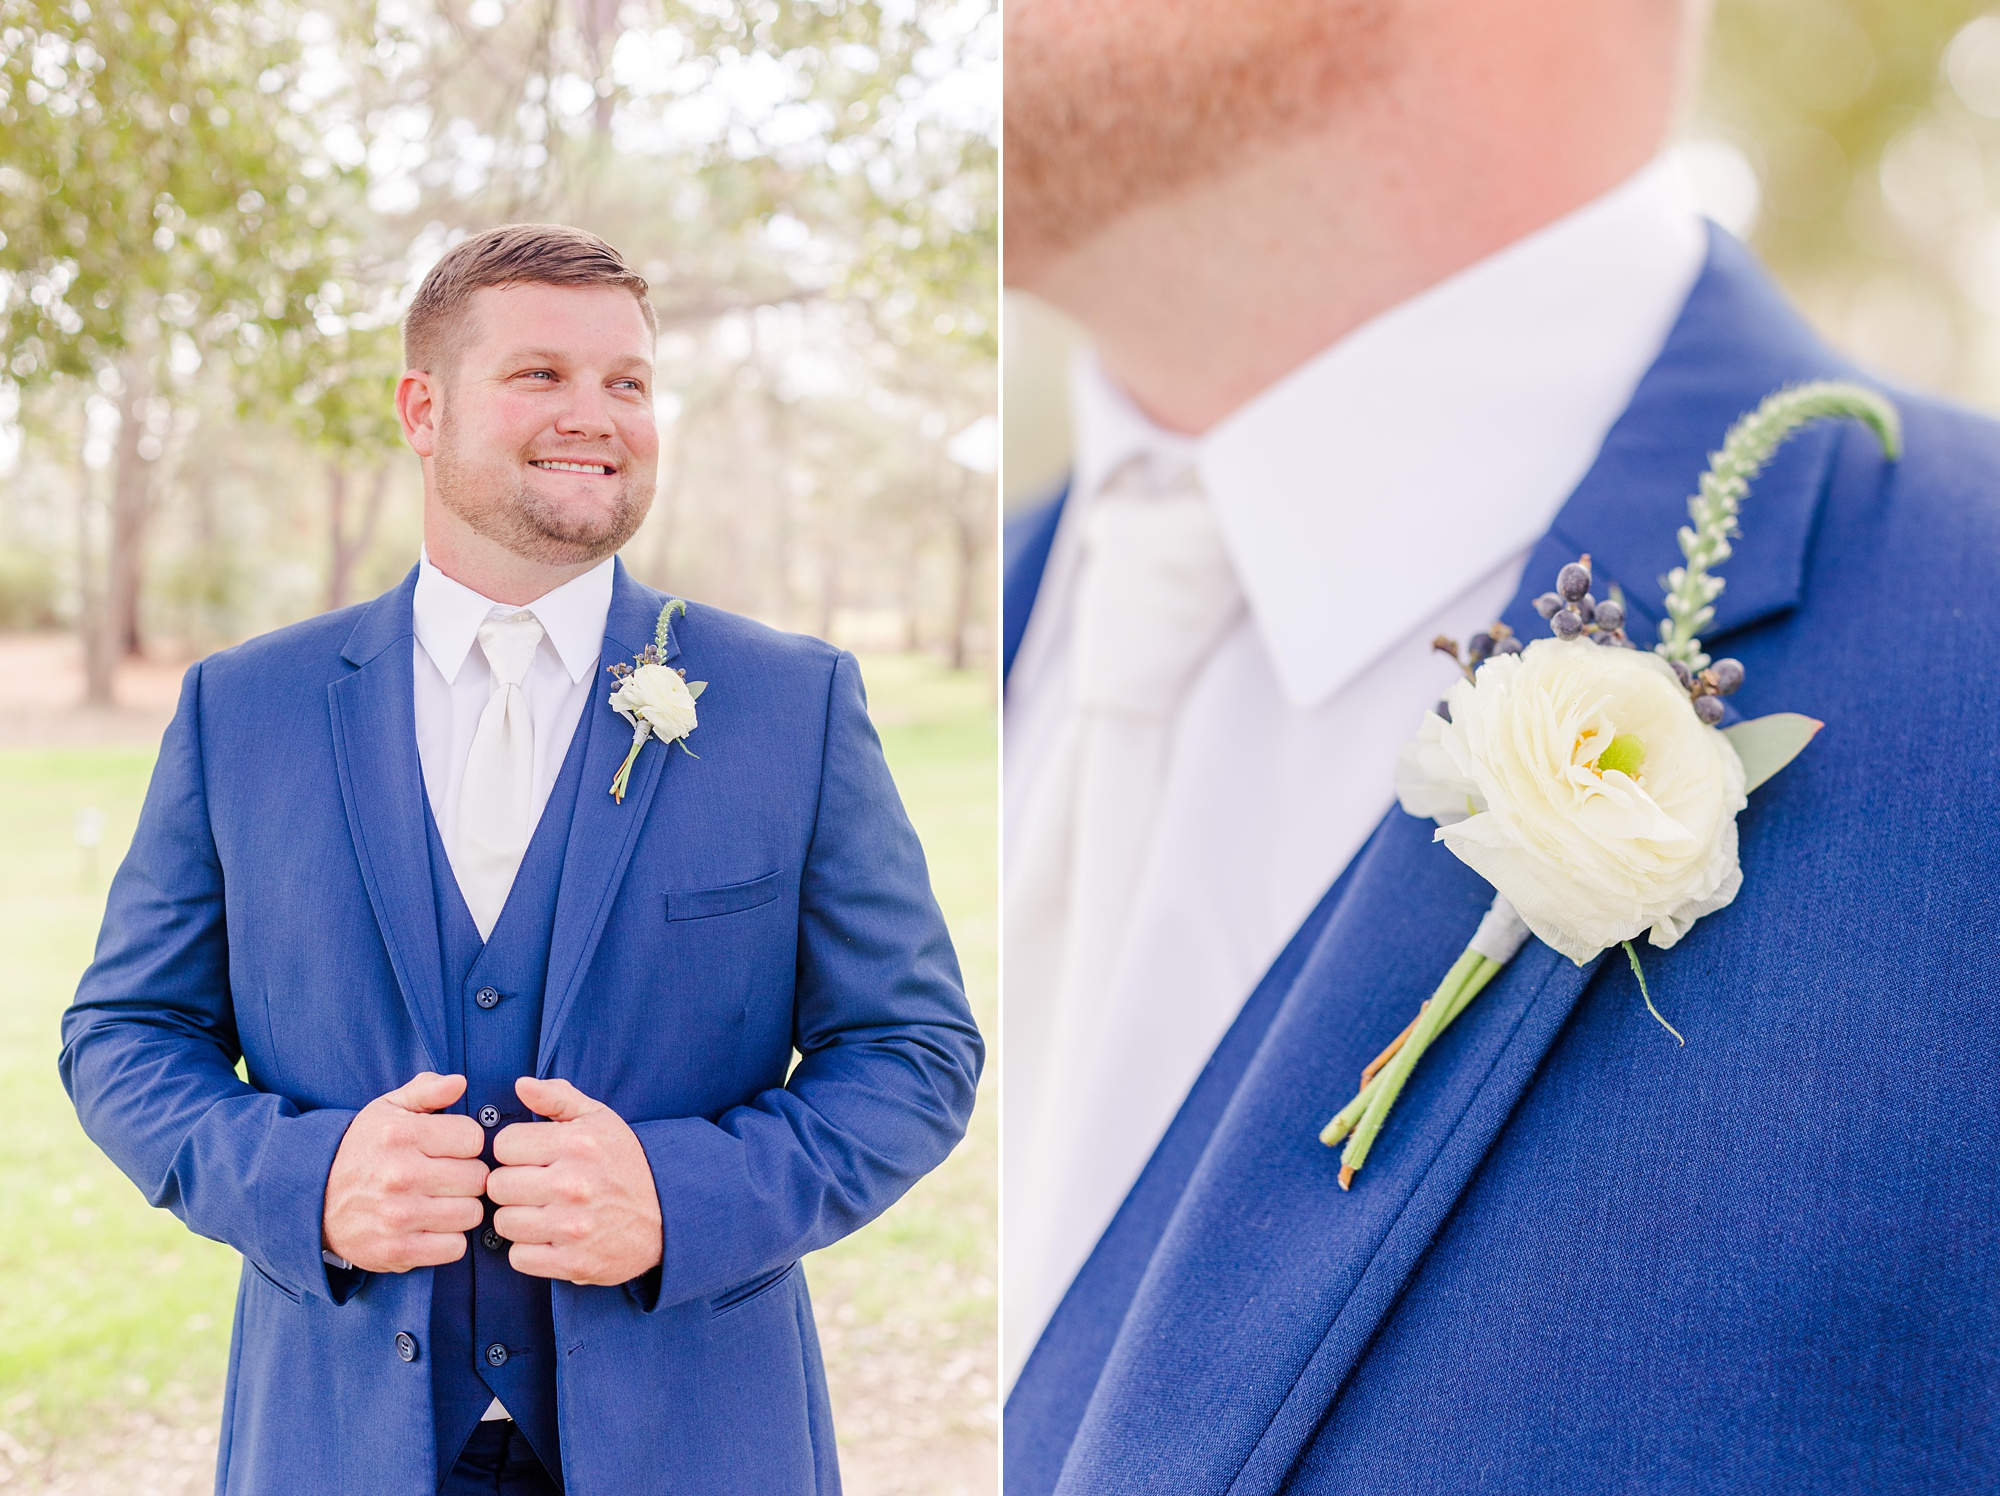 groom in blue suit with white boutonniere holds lapels